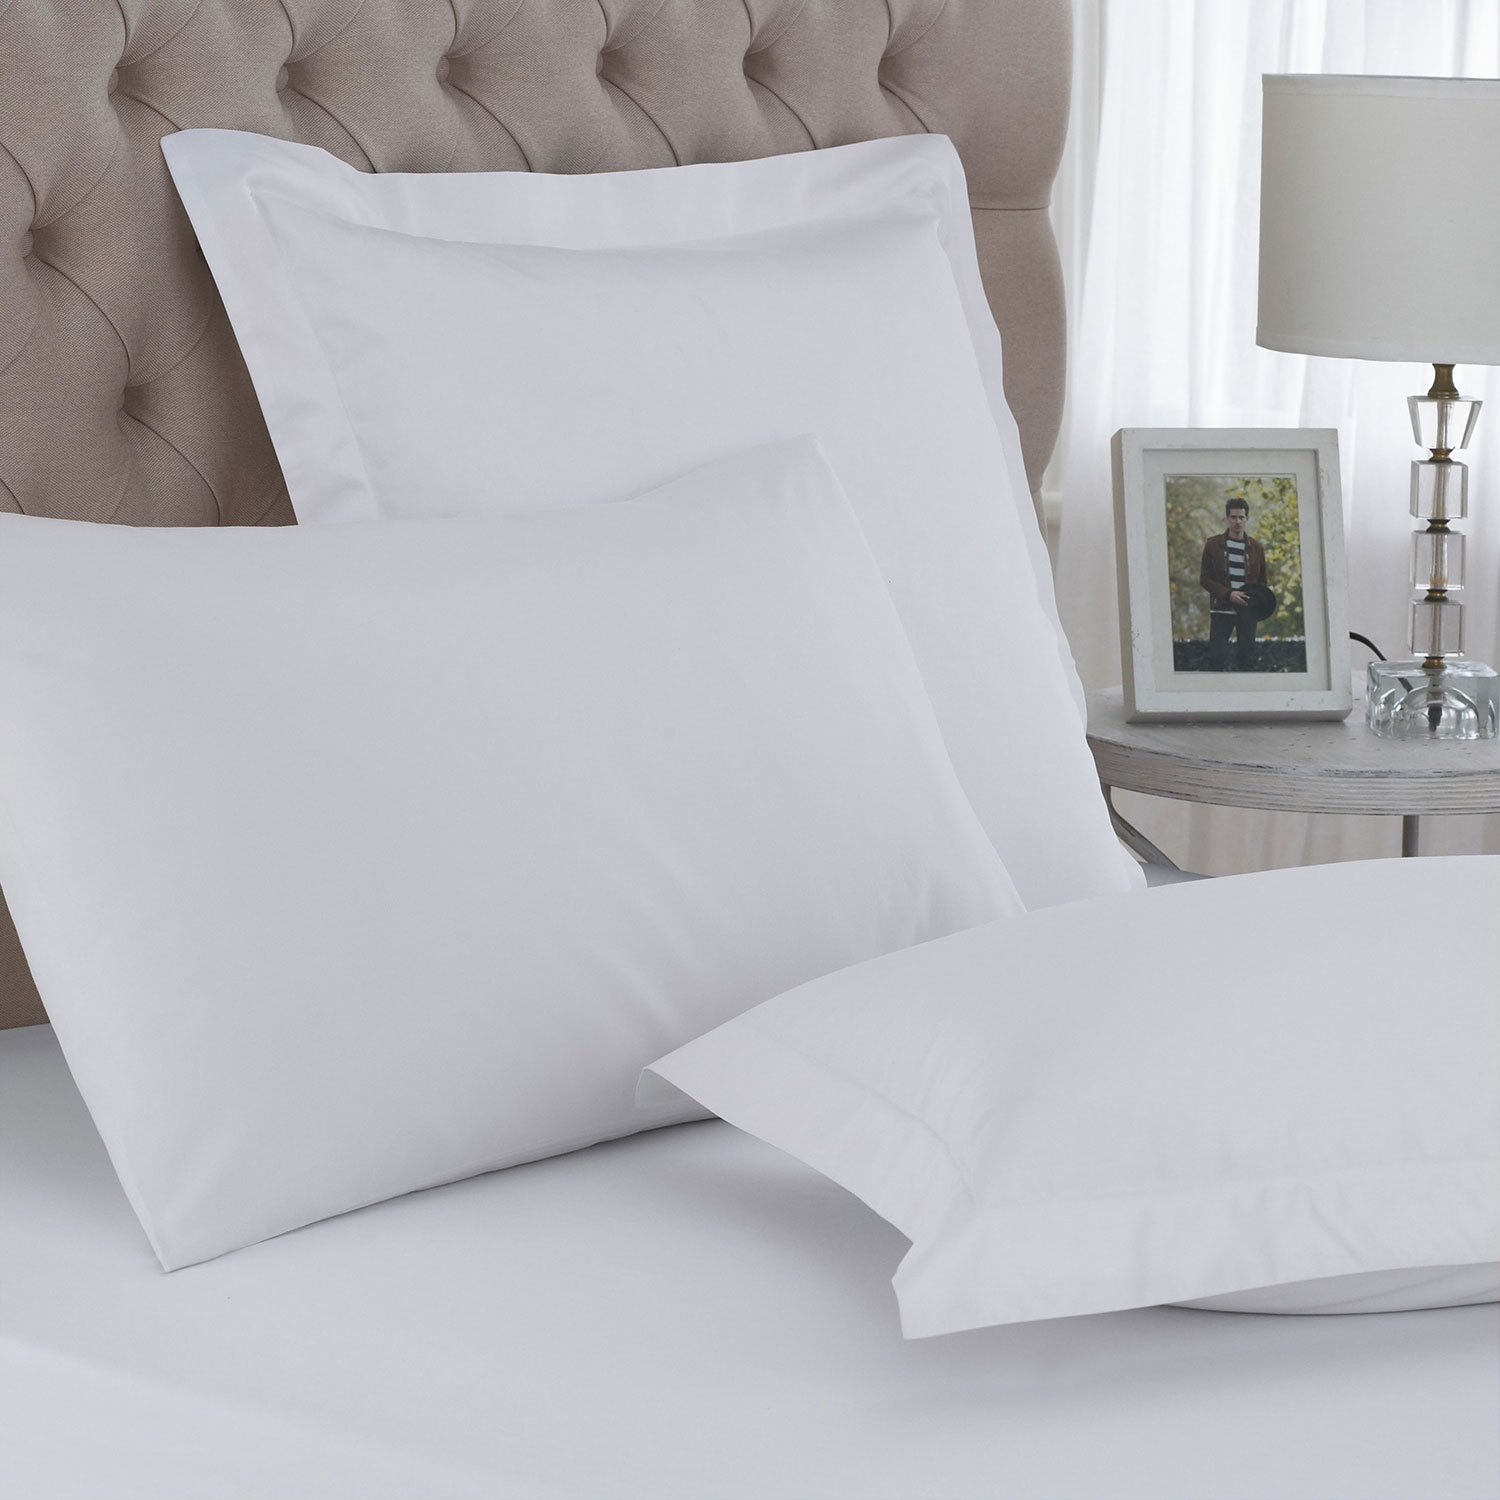 T_400_Egyptian_cotton_pillow_cases_Oxford_House_wife_Continental_White-min_1.jpg